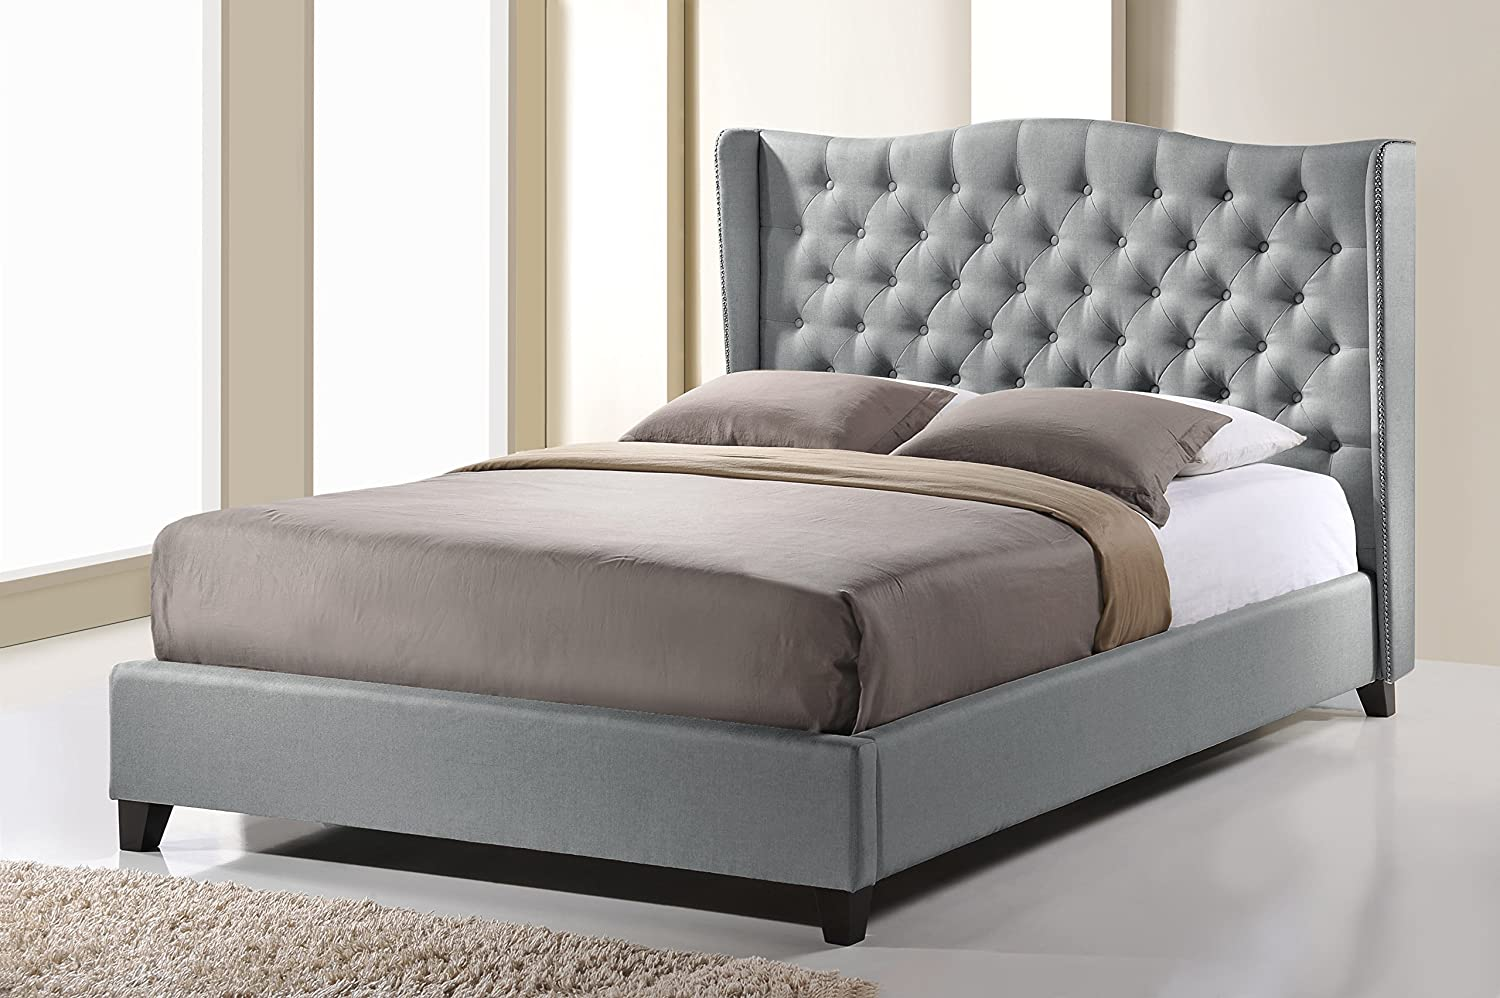 bedroom king and size bed cover box also stunning vs platform ideas with spring mattress